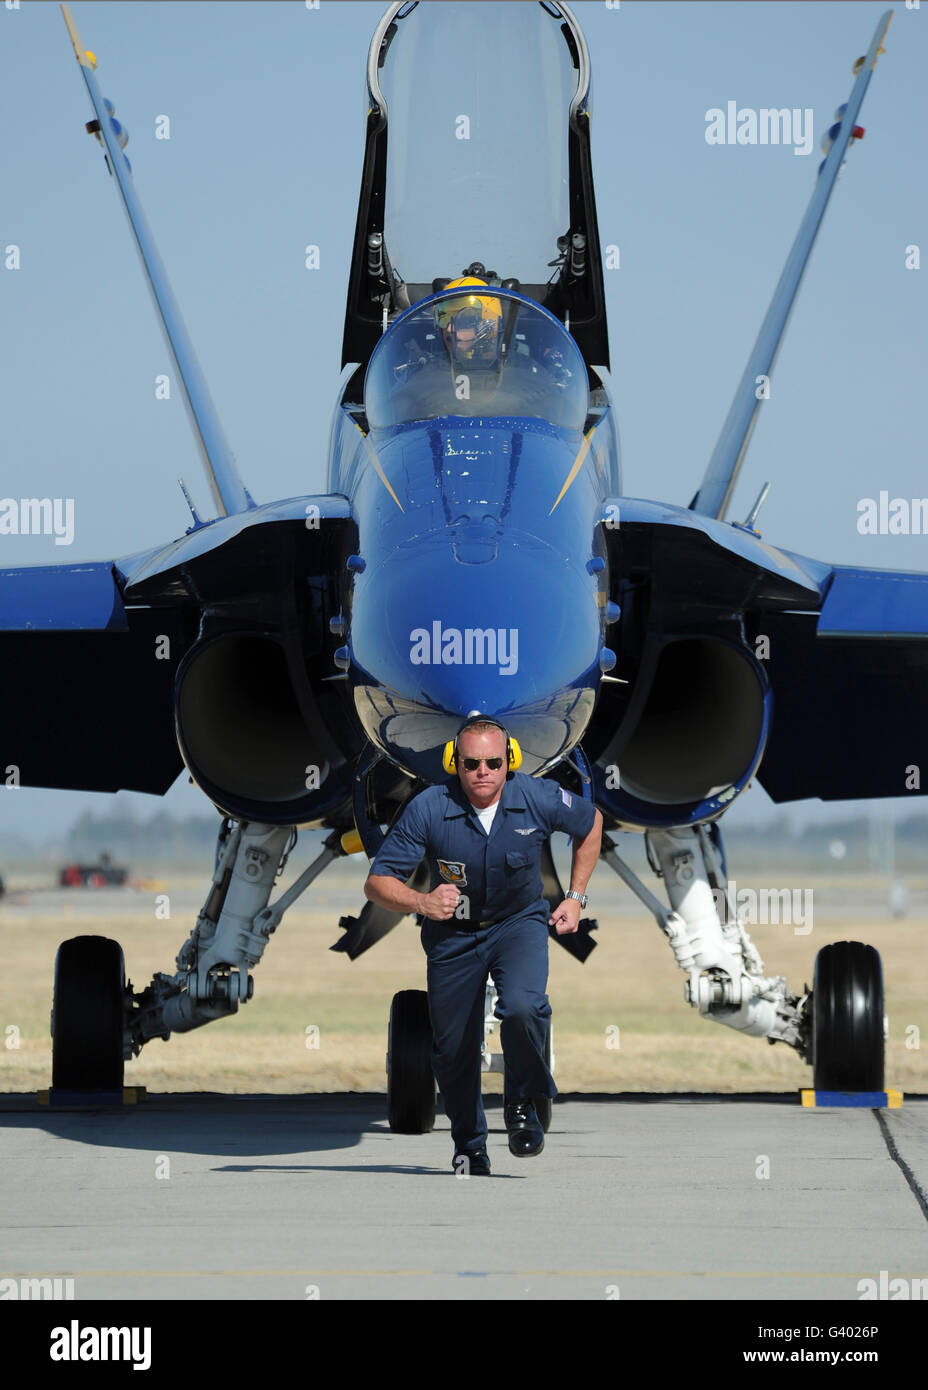 A crew chief sprints ahead of a Blue Angels F/A-18 aircraft. - Stock Image